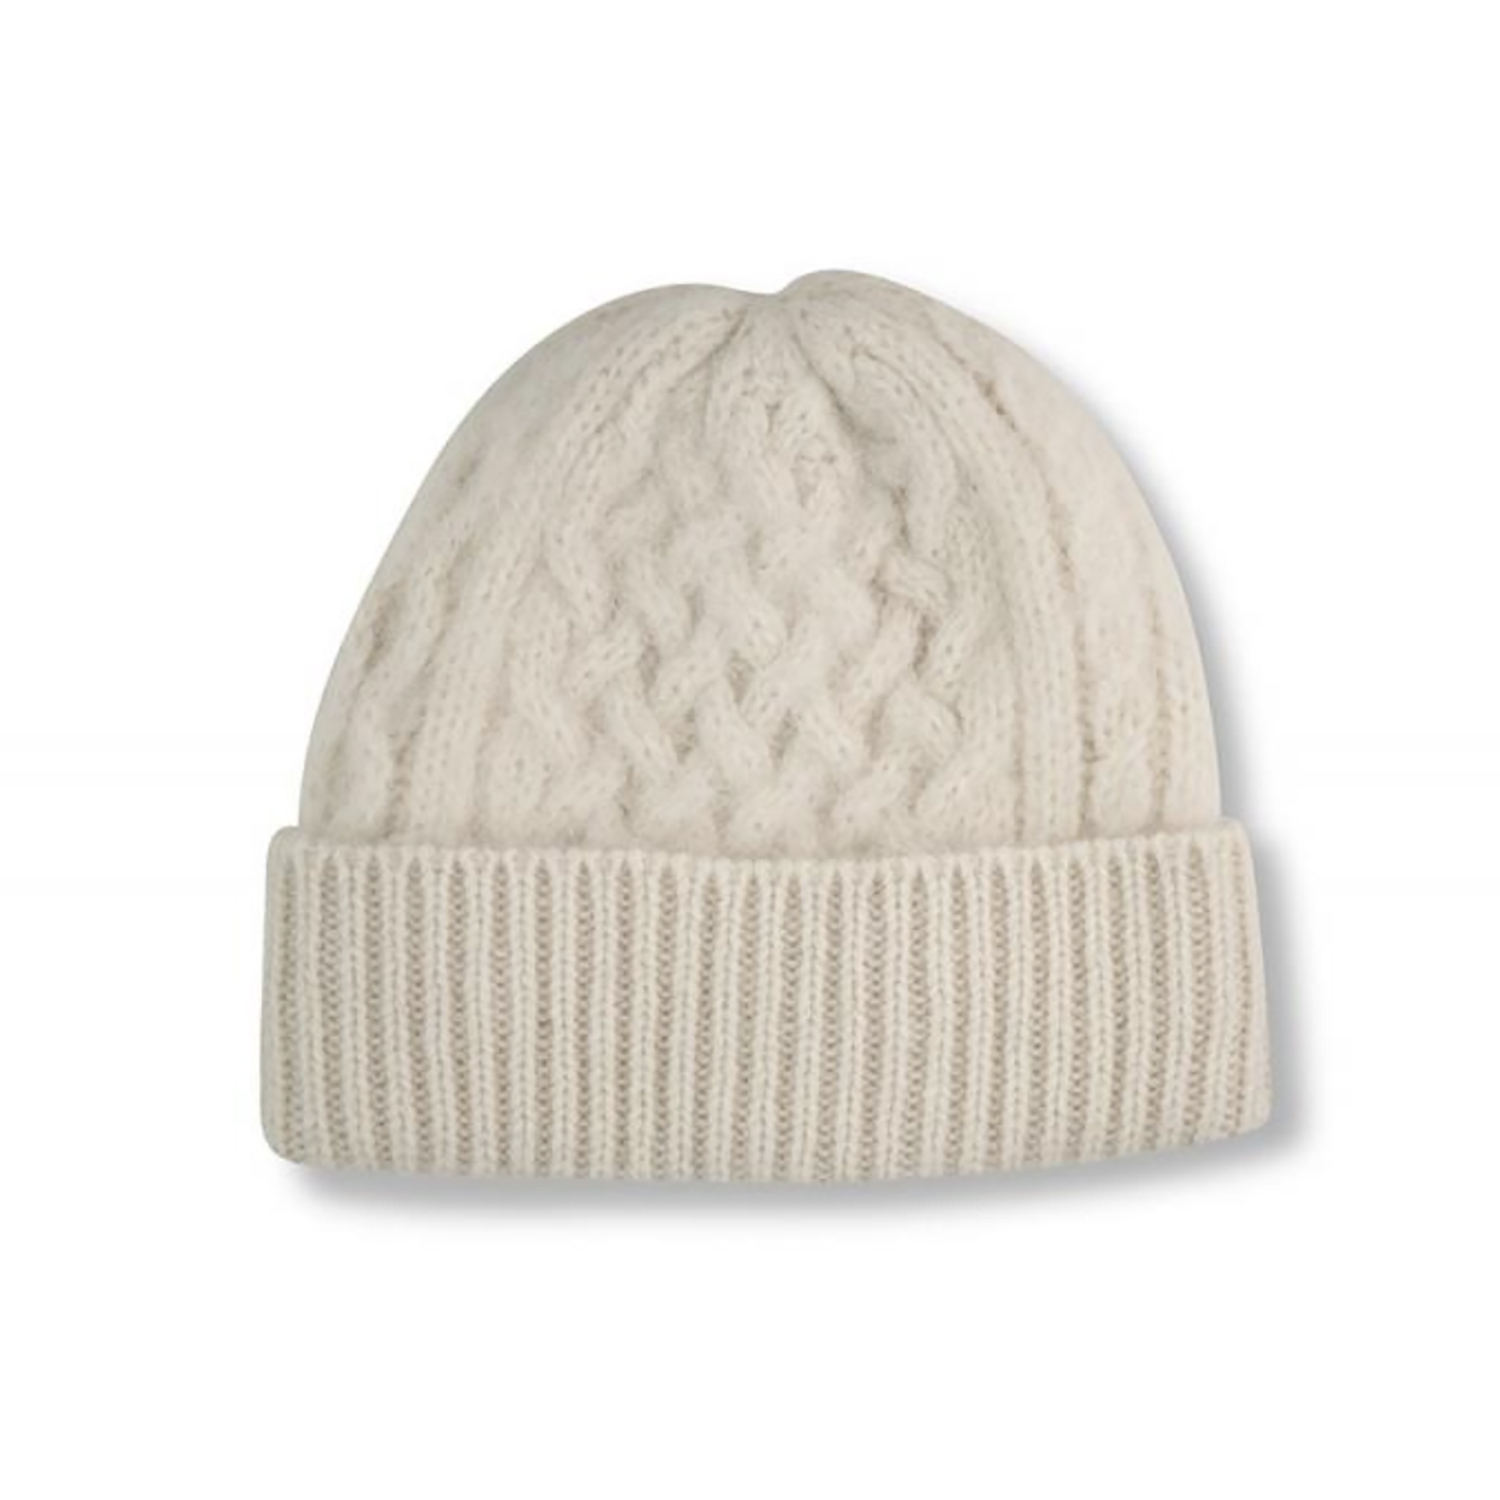 Börjesson Knit Beanie White